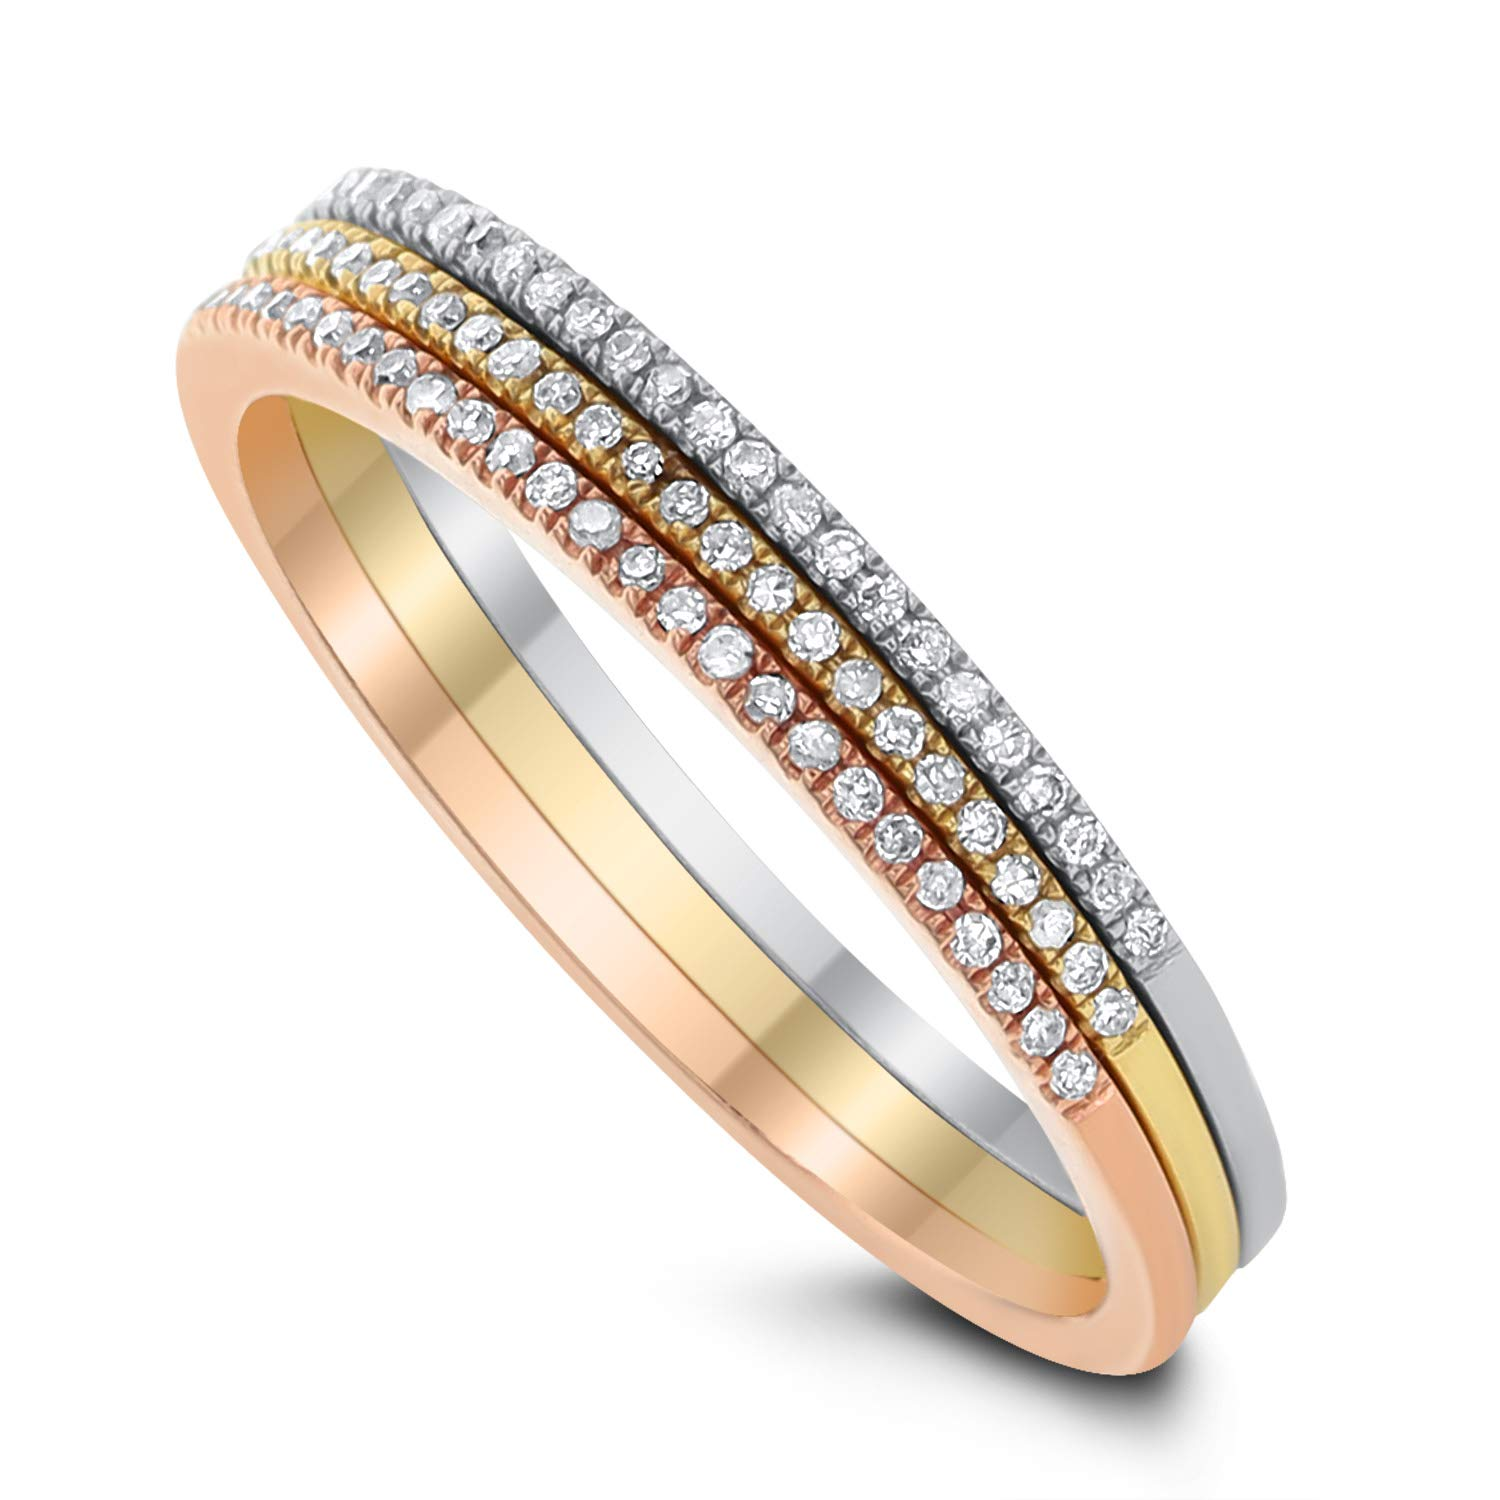 Diamond Couture 14K Tri-Color Gold Diamond Stackable Ring Set in White,Yellow, and Rose Gold, Size 7 (0.25cttw I-J Color, I1-I2 Clarity), Gift for Her by D C DIAMOND COUTURE